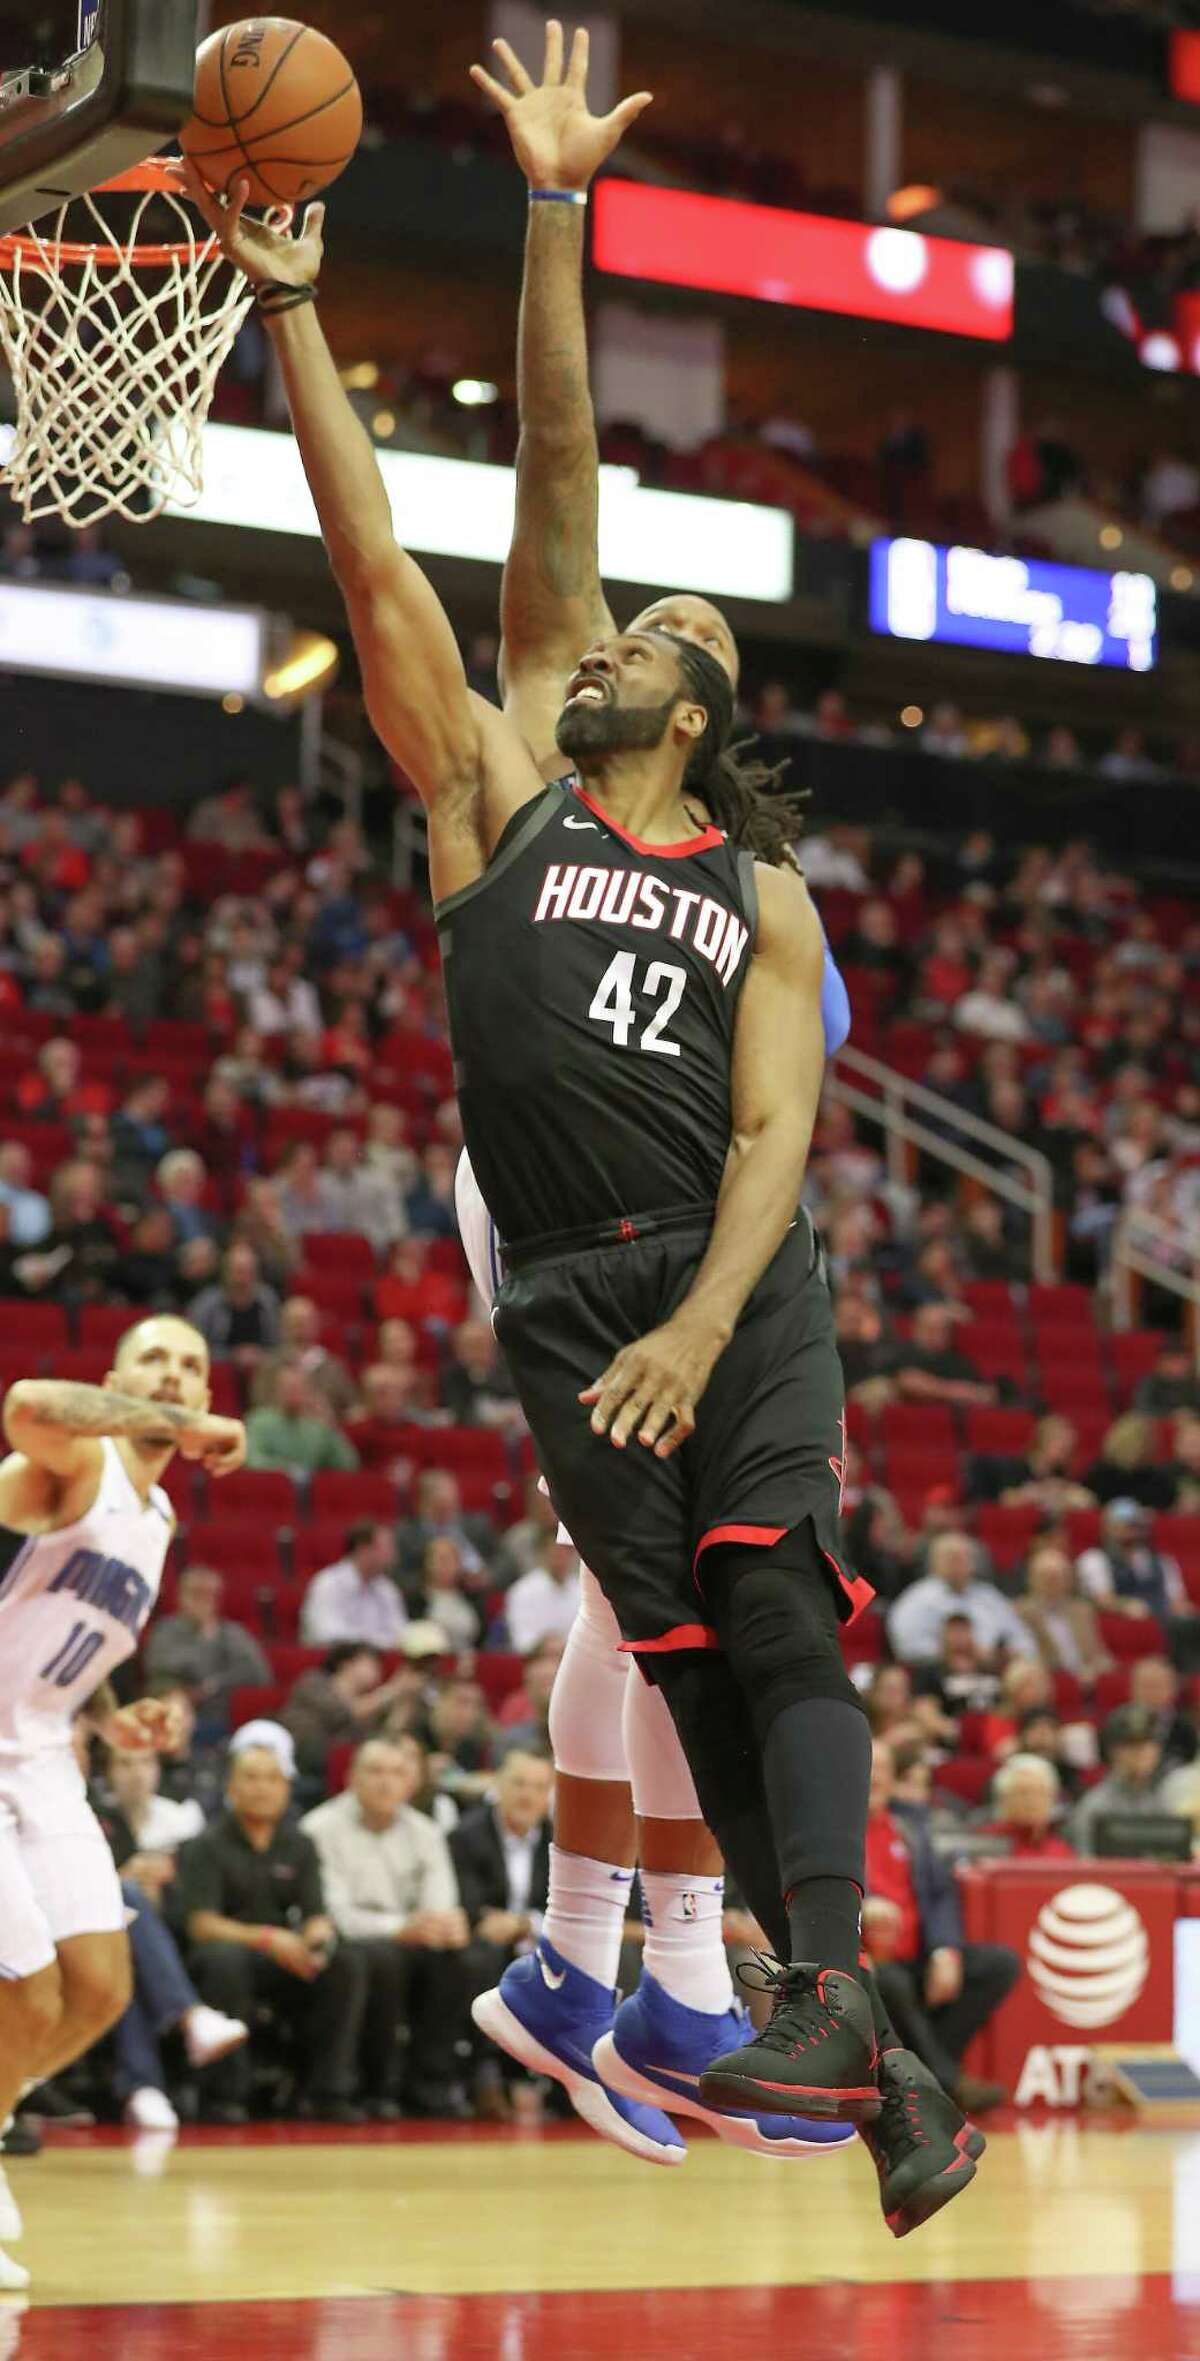 Orlando Magic forward Marreese Speights (5) could stop Houston Rockets center Nene Hilario (42) from scoring in the 1st-quarter of an NBA basketball game at Toyota Center on Tuesday, Jan. 30, 2018, in Houston.